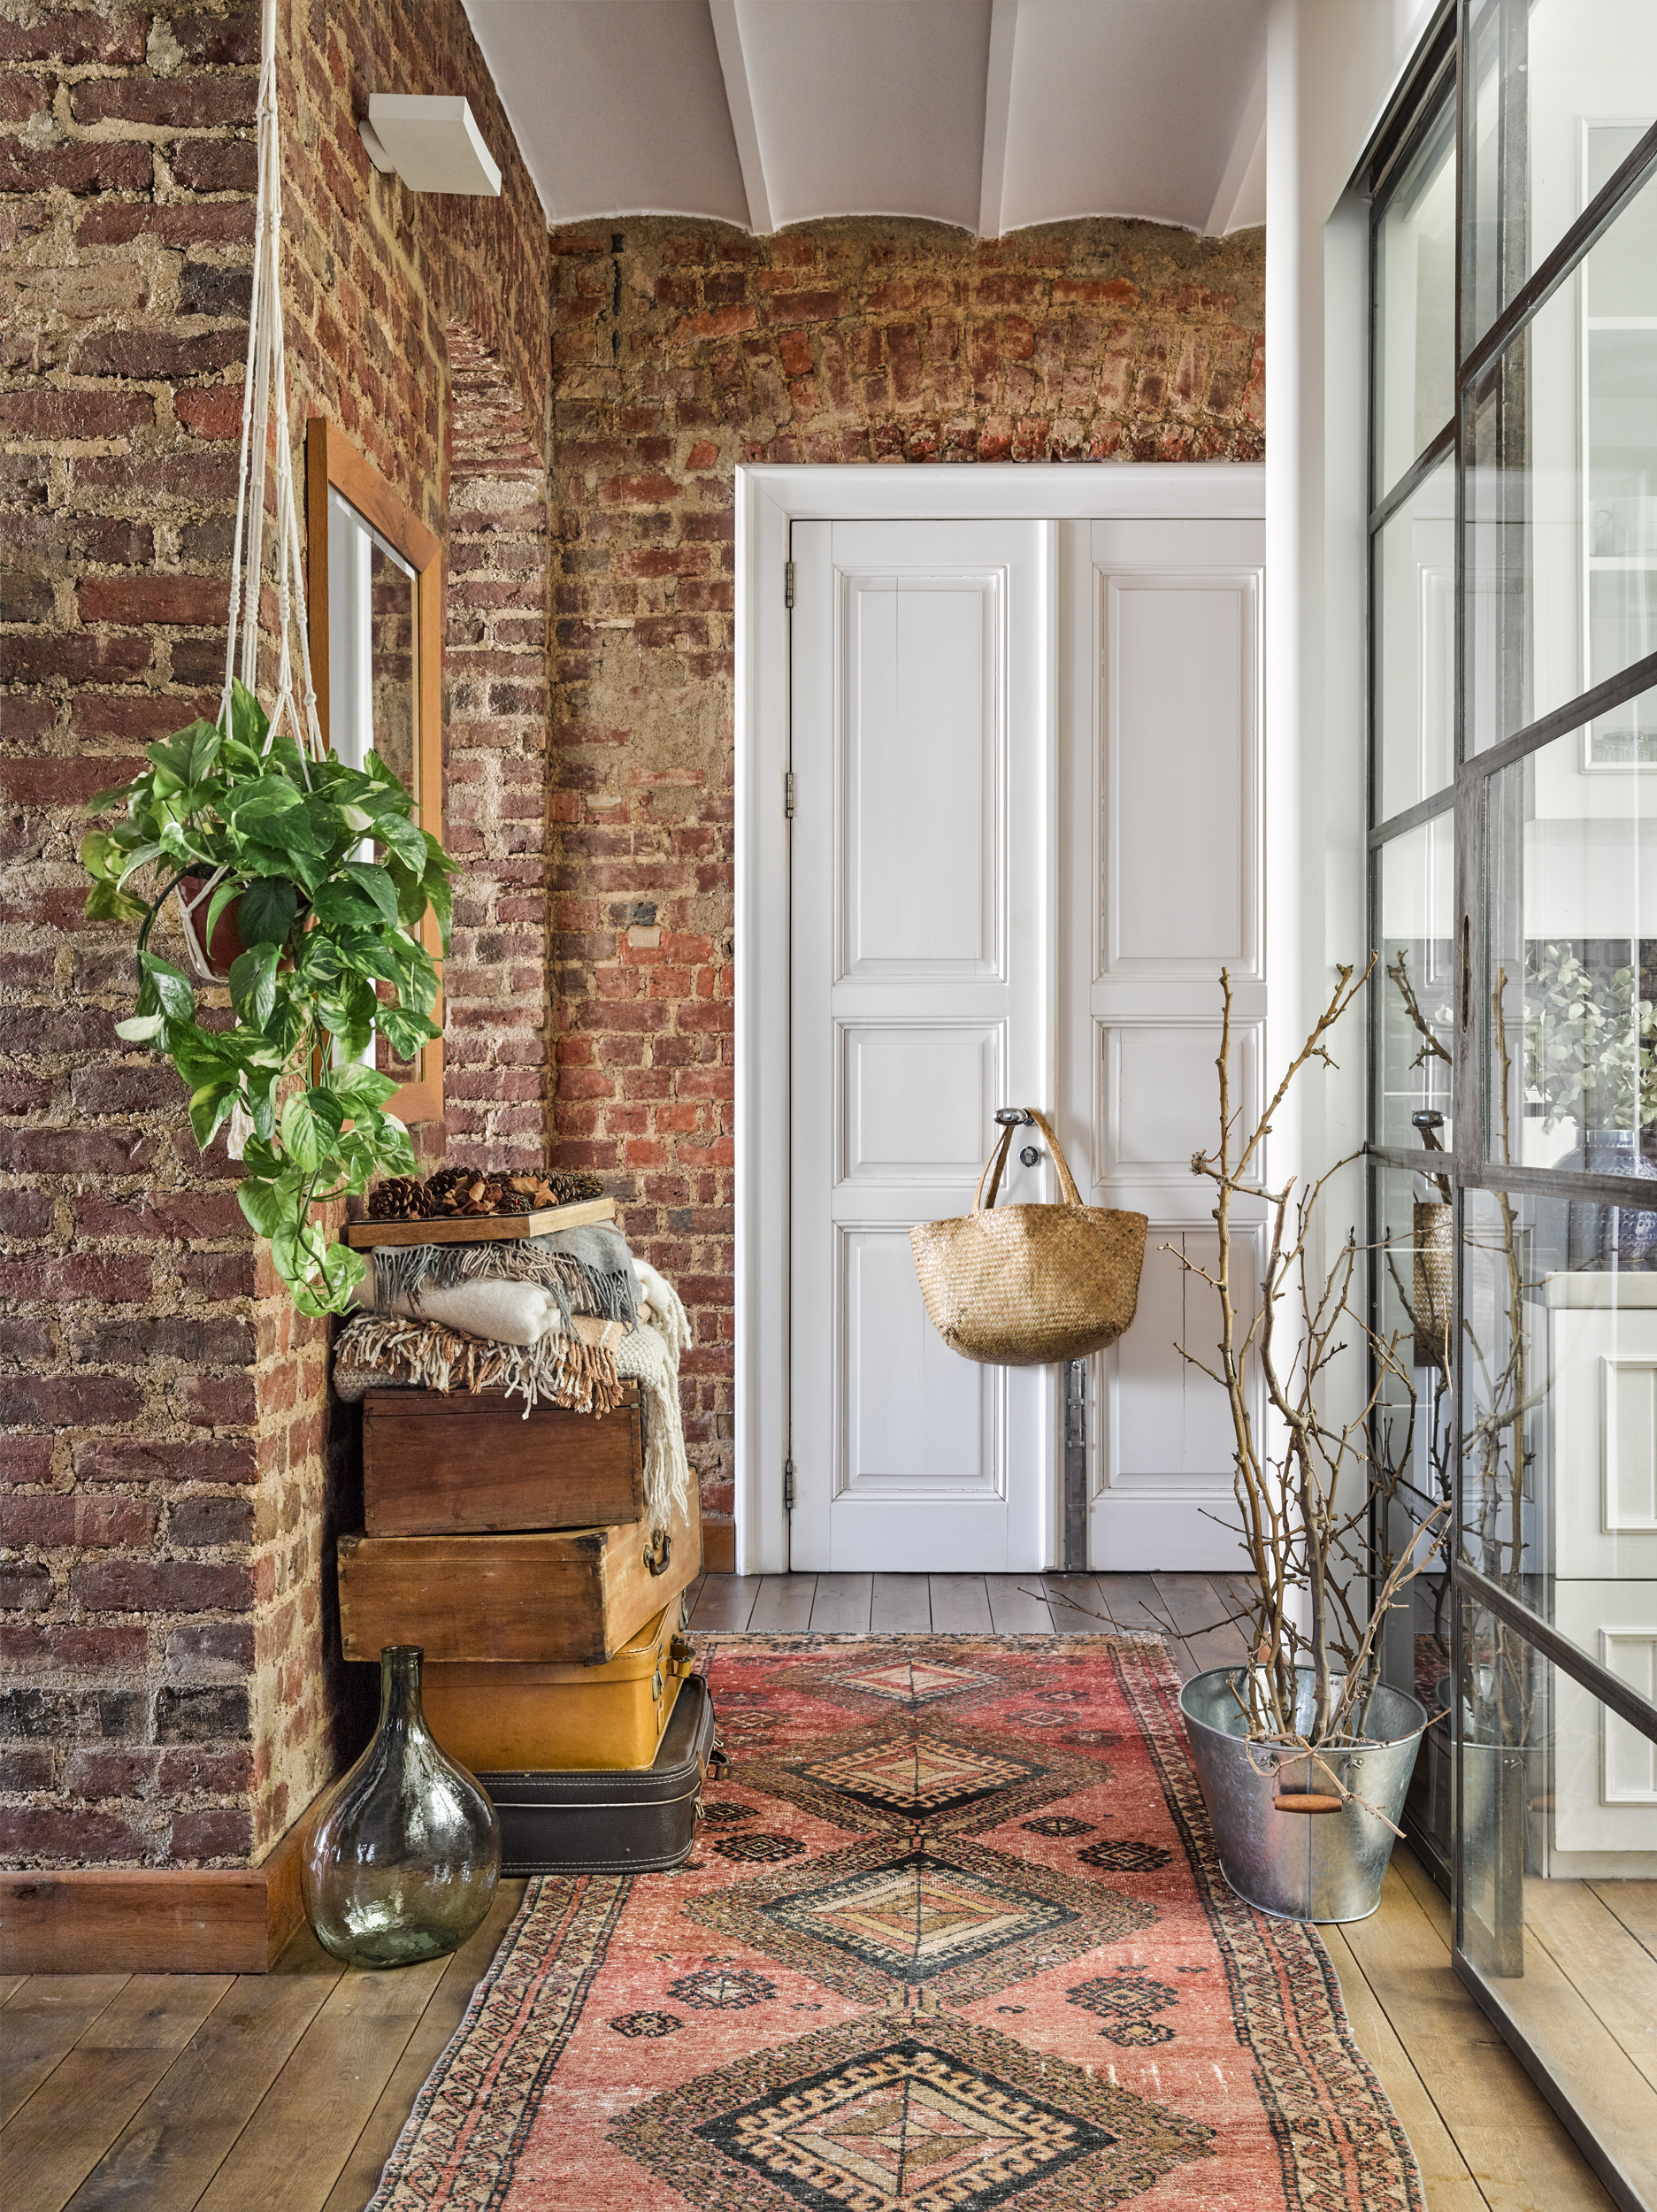 Where To Find Free Interior Design Help From Professionals Apartment Therapy